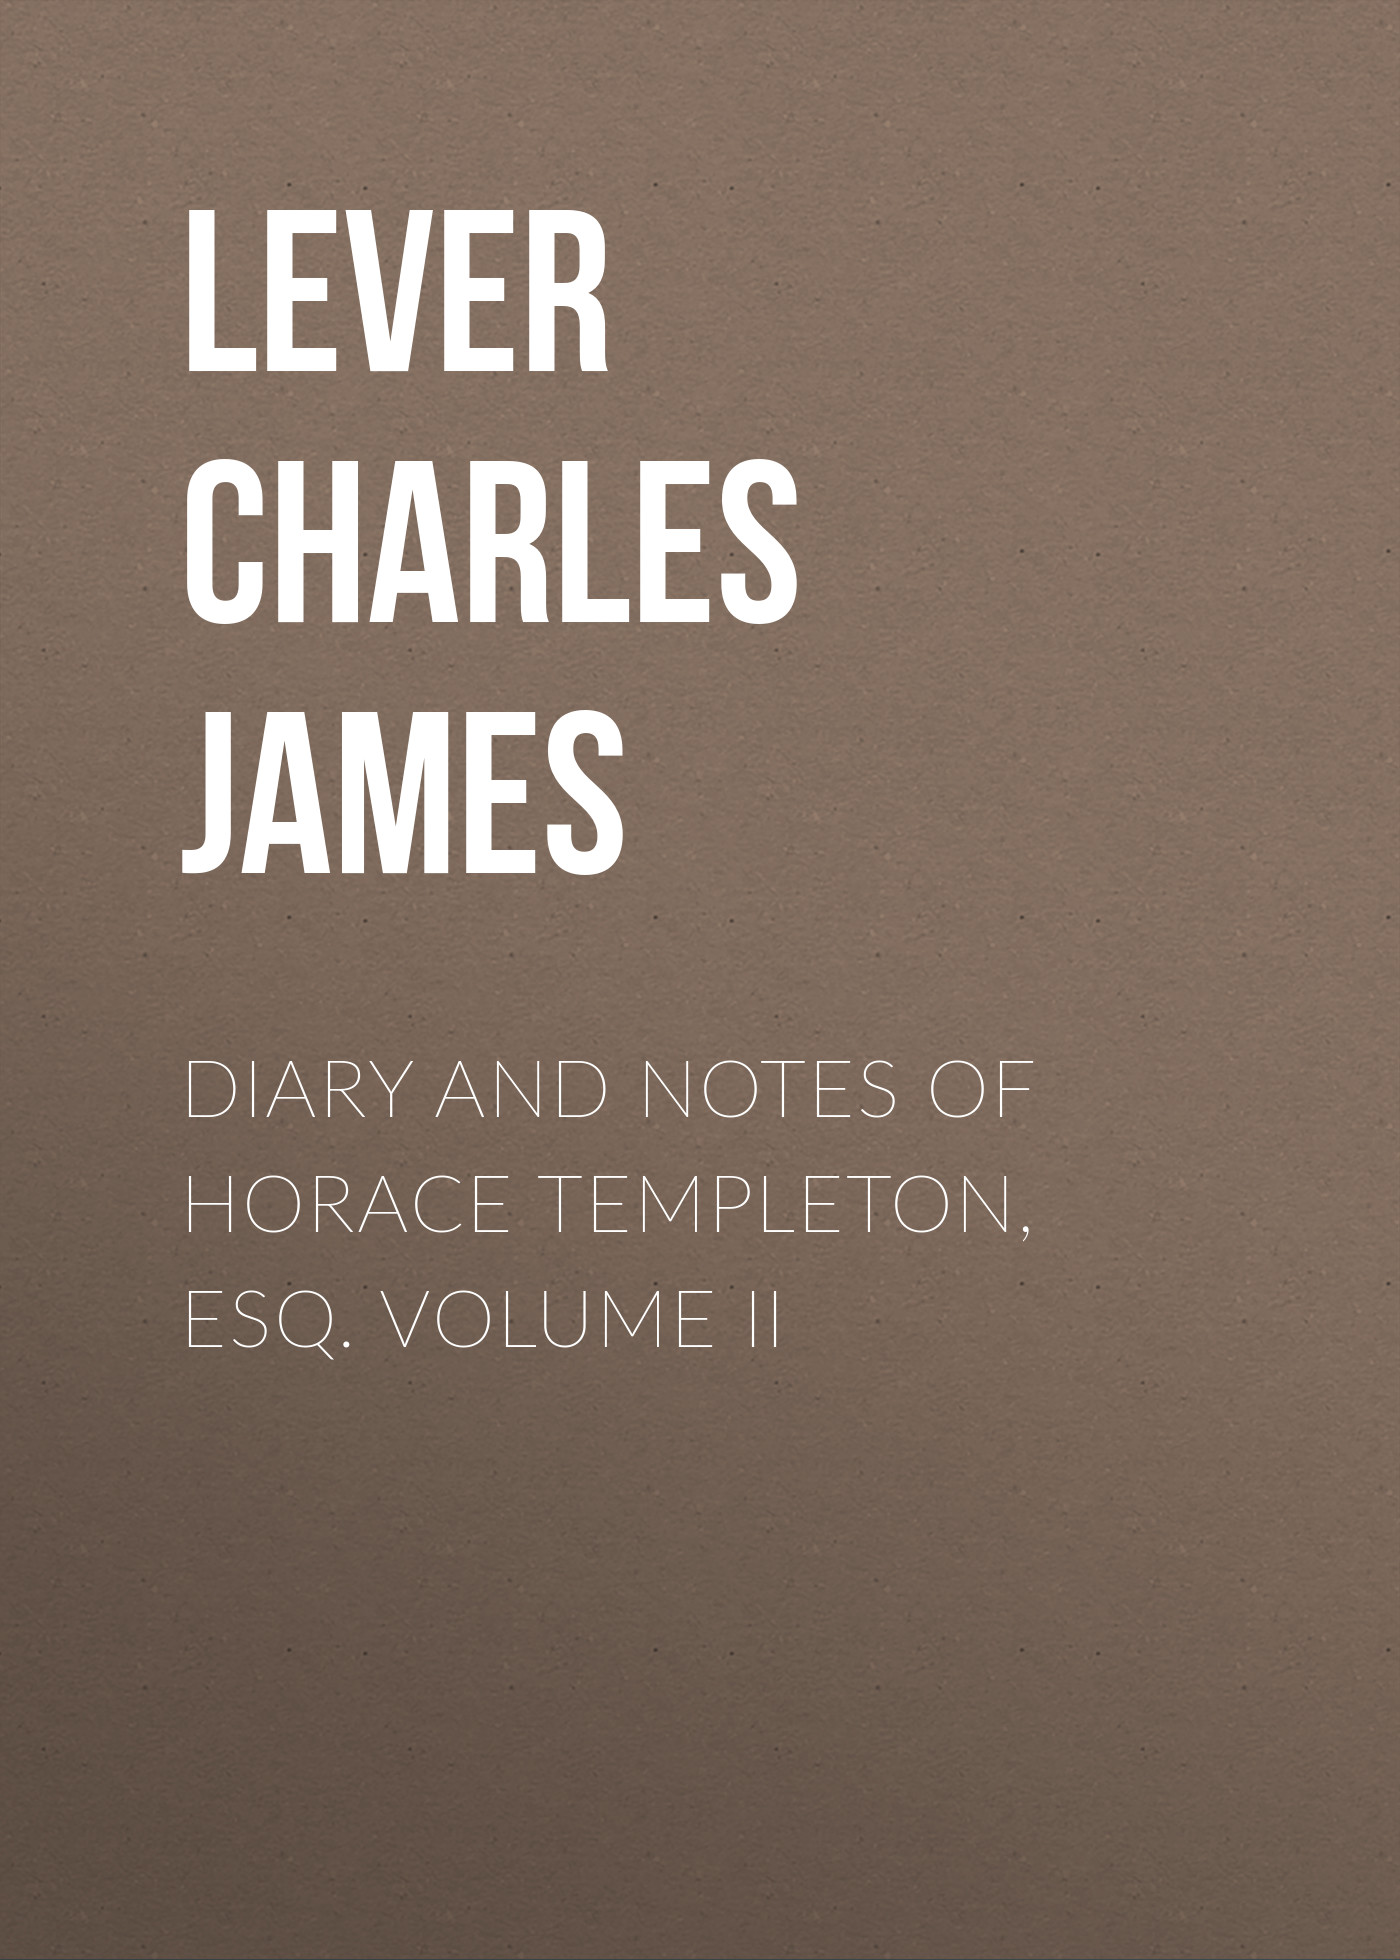 Diary And Notes Of Horace Templeton, Esq. Volume II